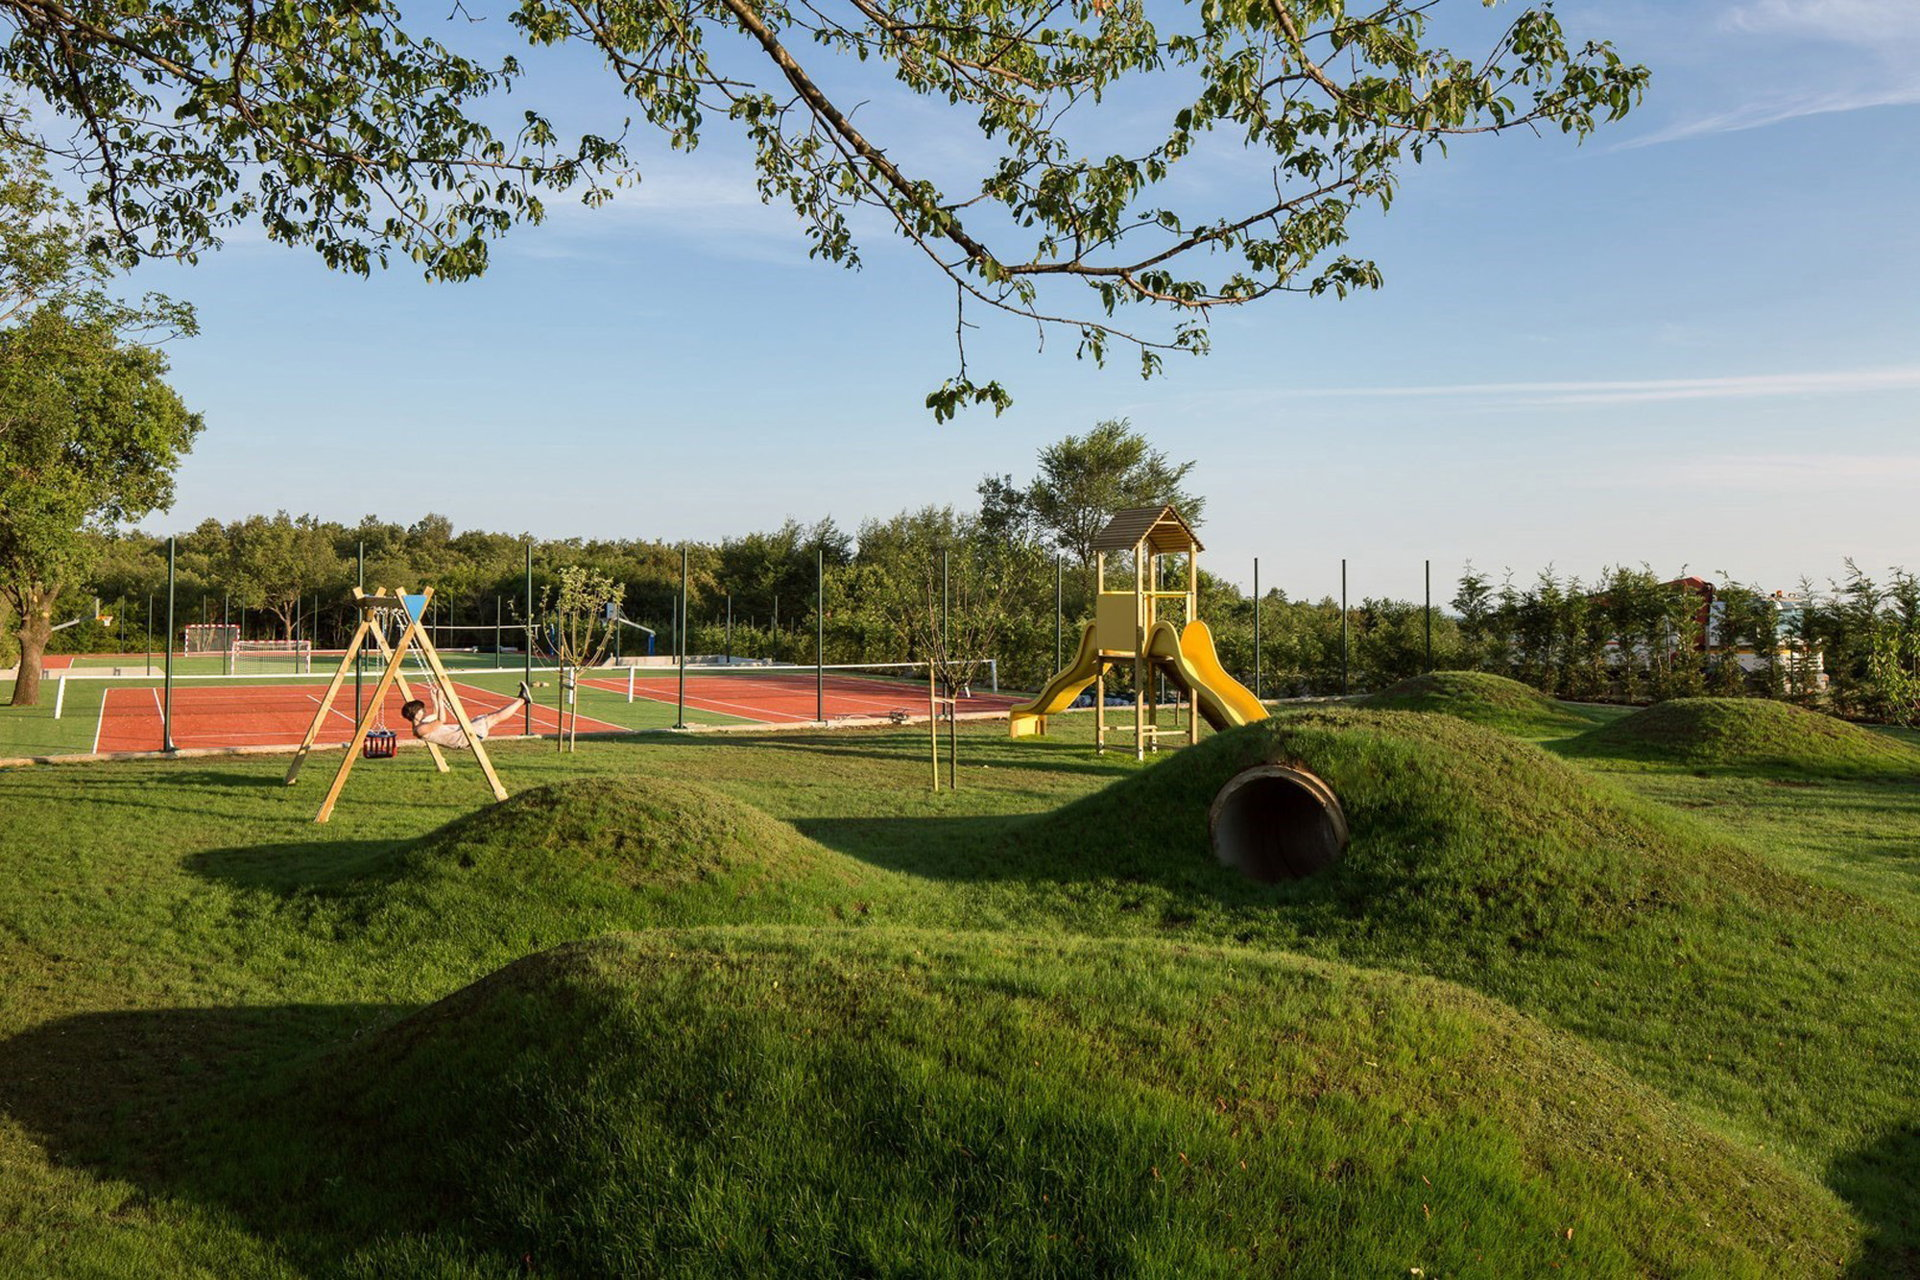 Playground of the villa complex